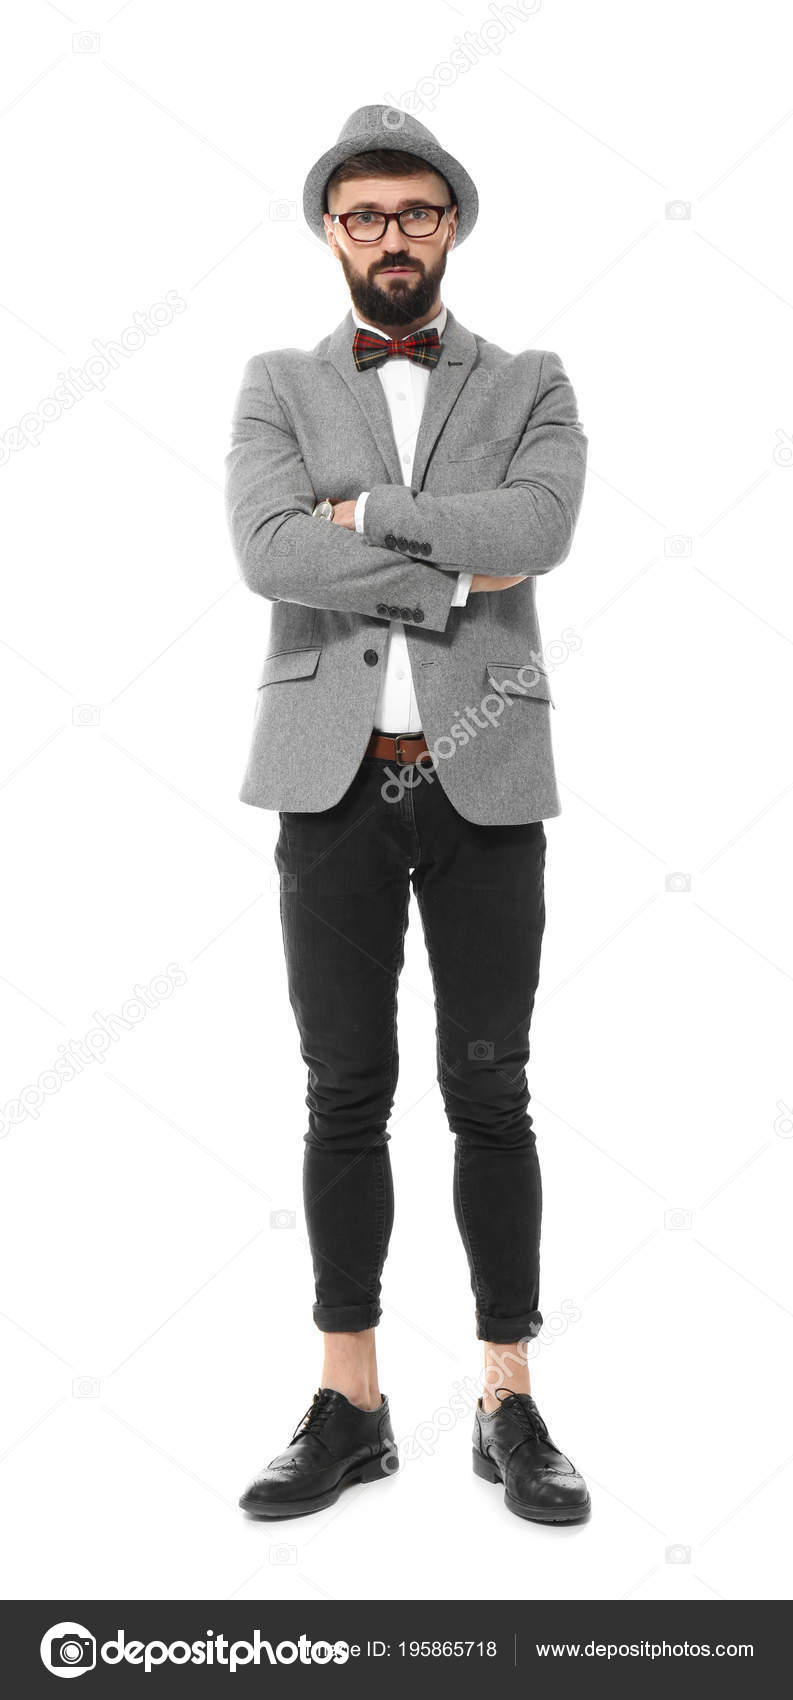 Vestiti Eleganti Hipster.Handsome Hipster In Stylish Outfit Stock Photo C Belchonock